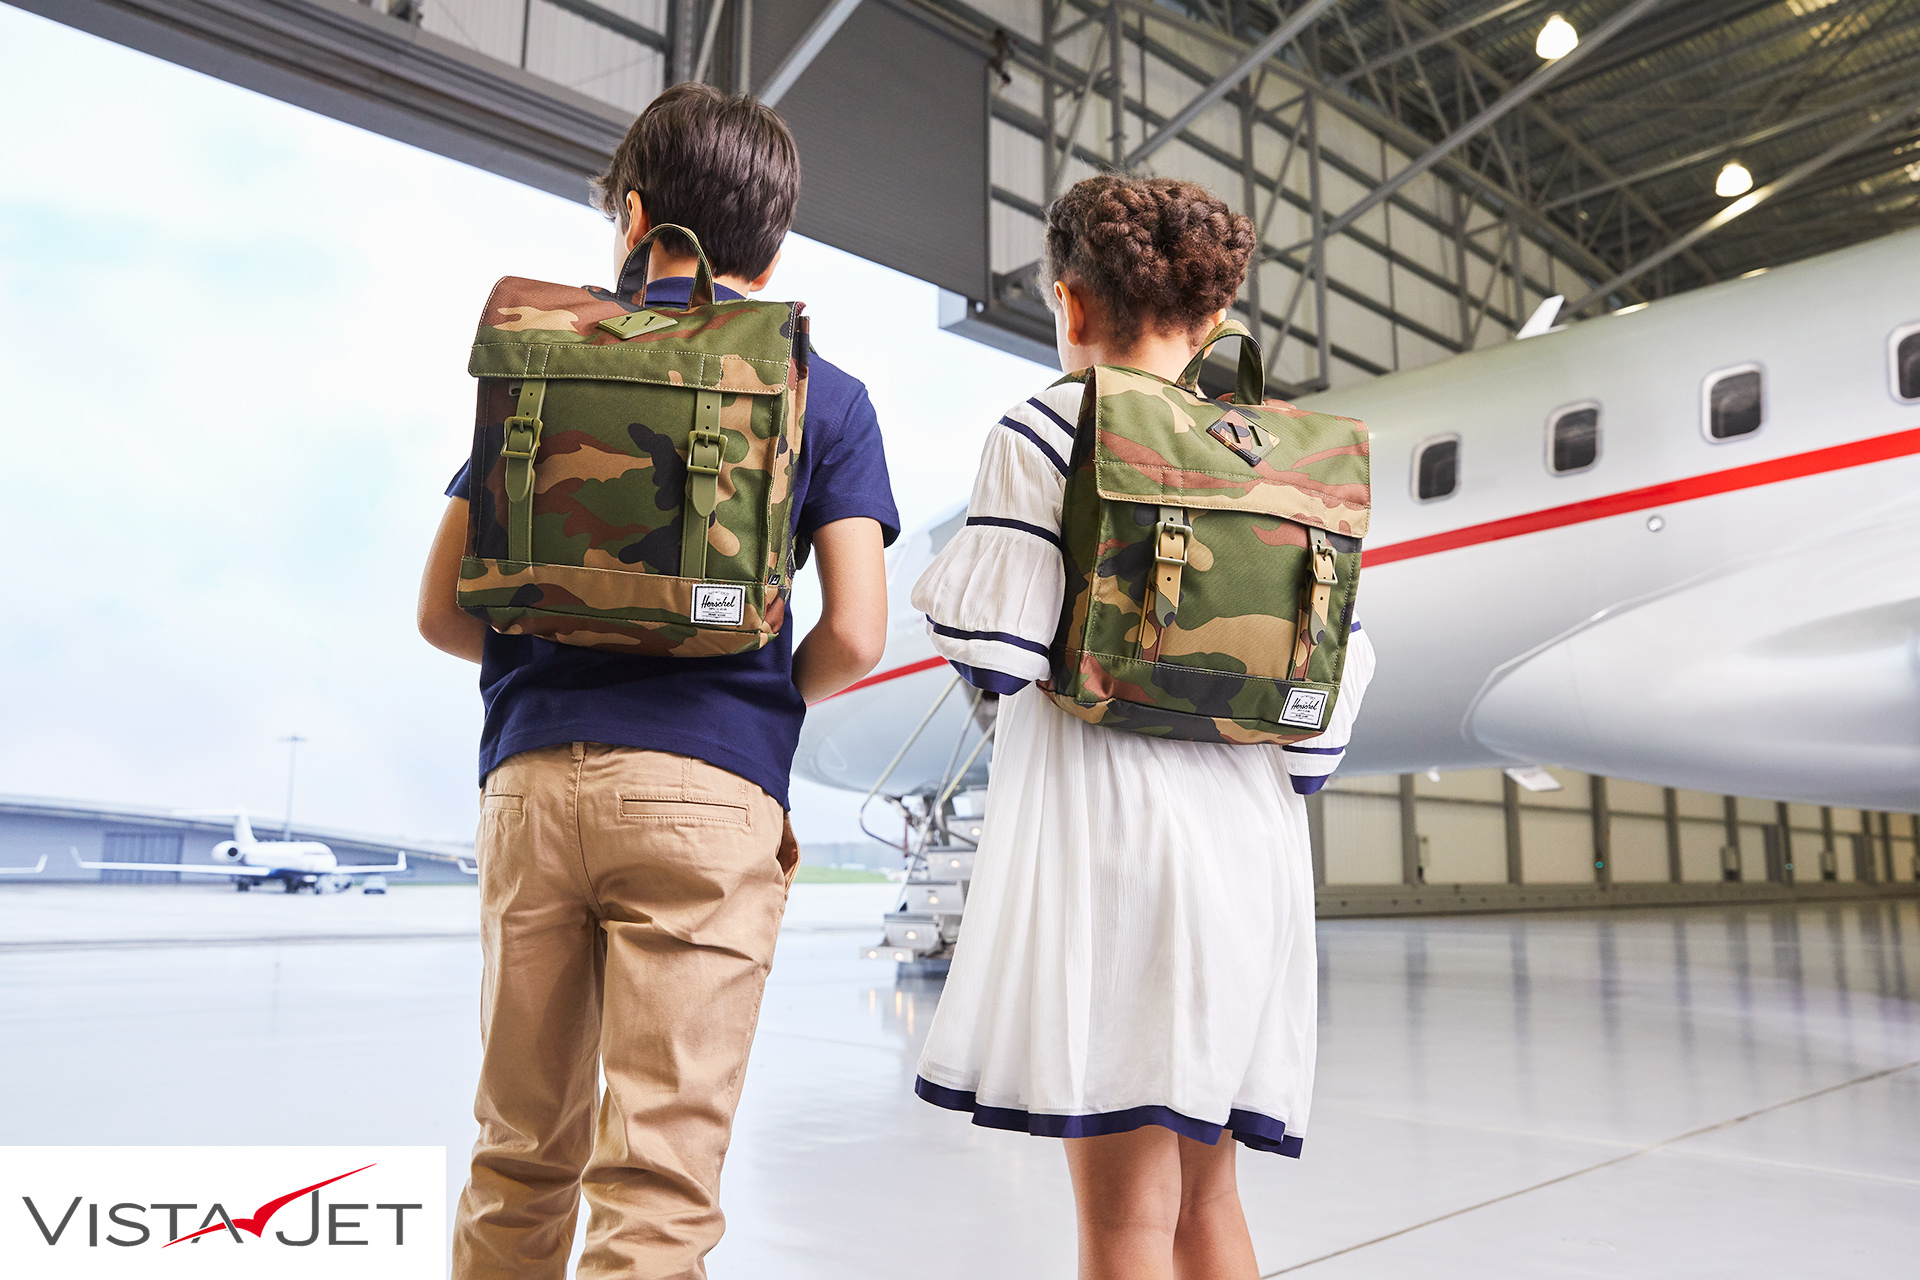 Children boarding a plane with backpacks